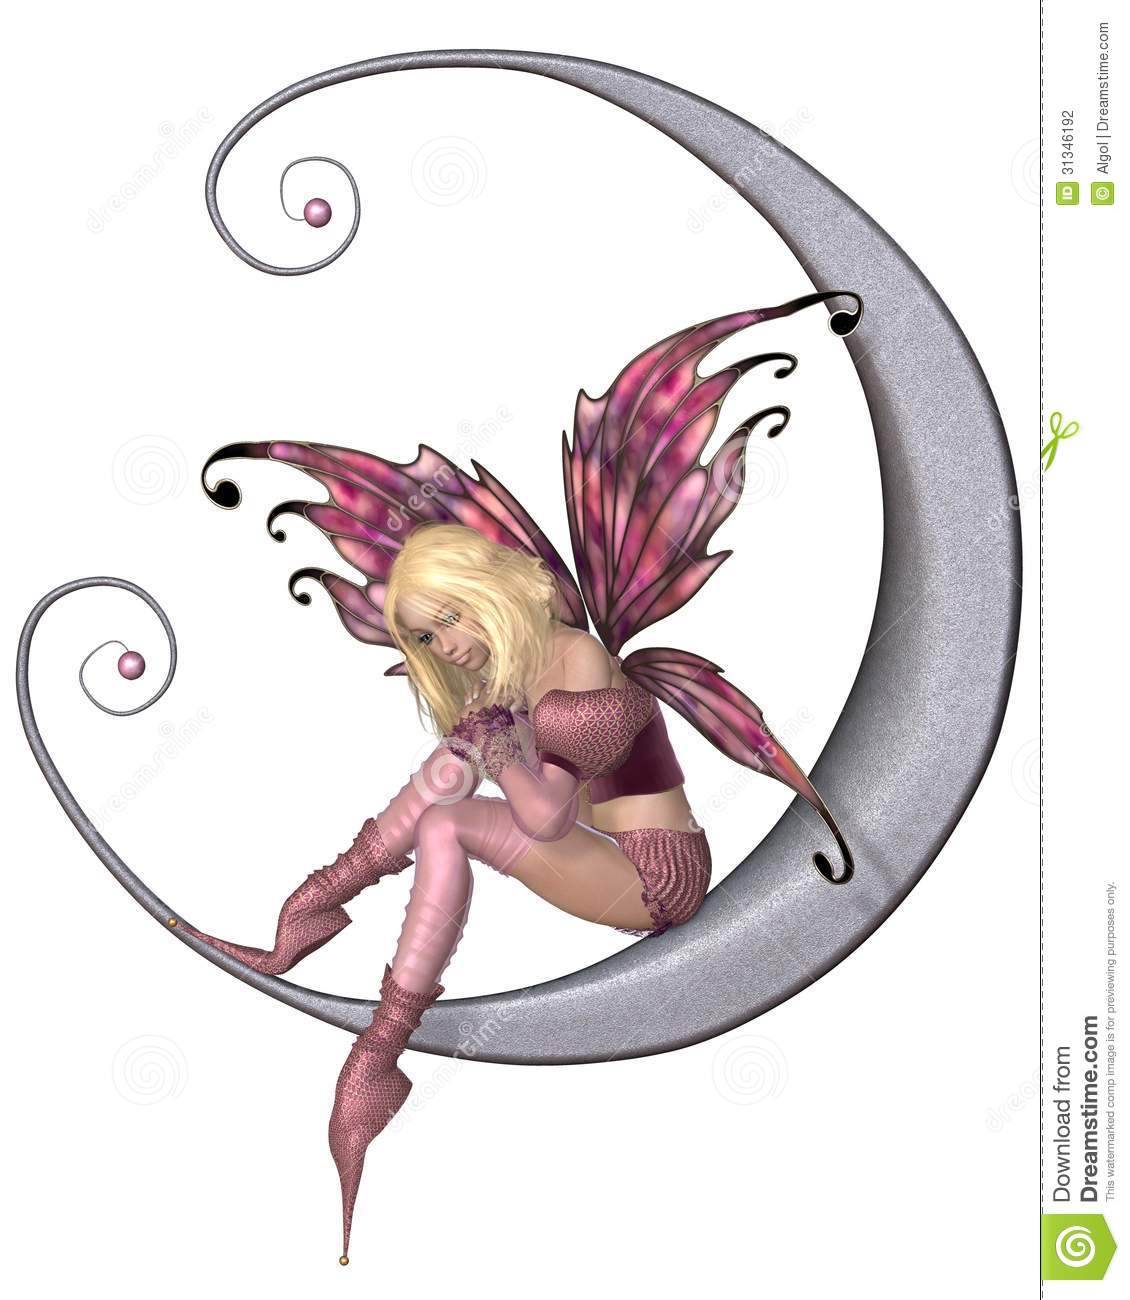 Fairy Dressed In Pink Sitting On A Silver Moon 3d Digitally Rendered